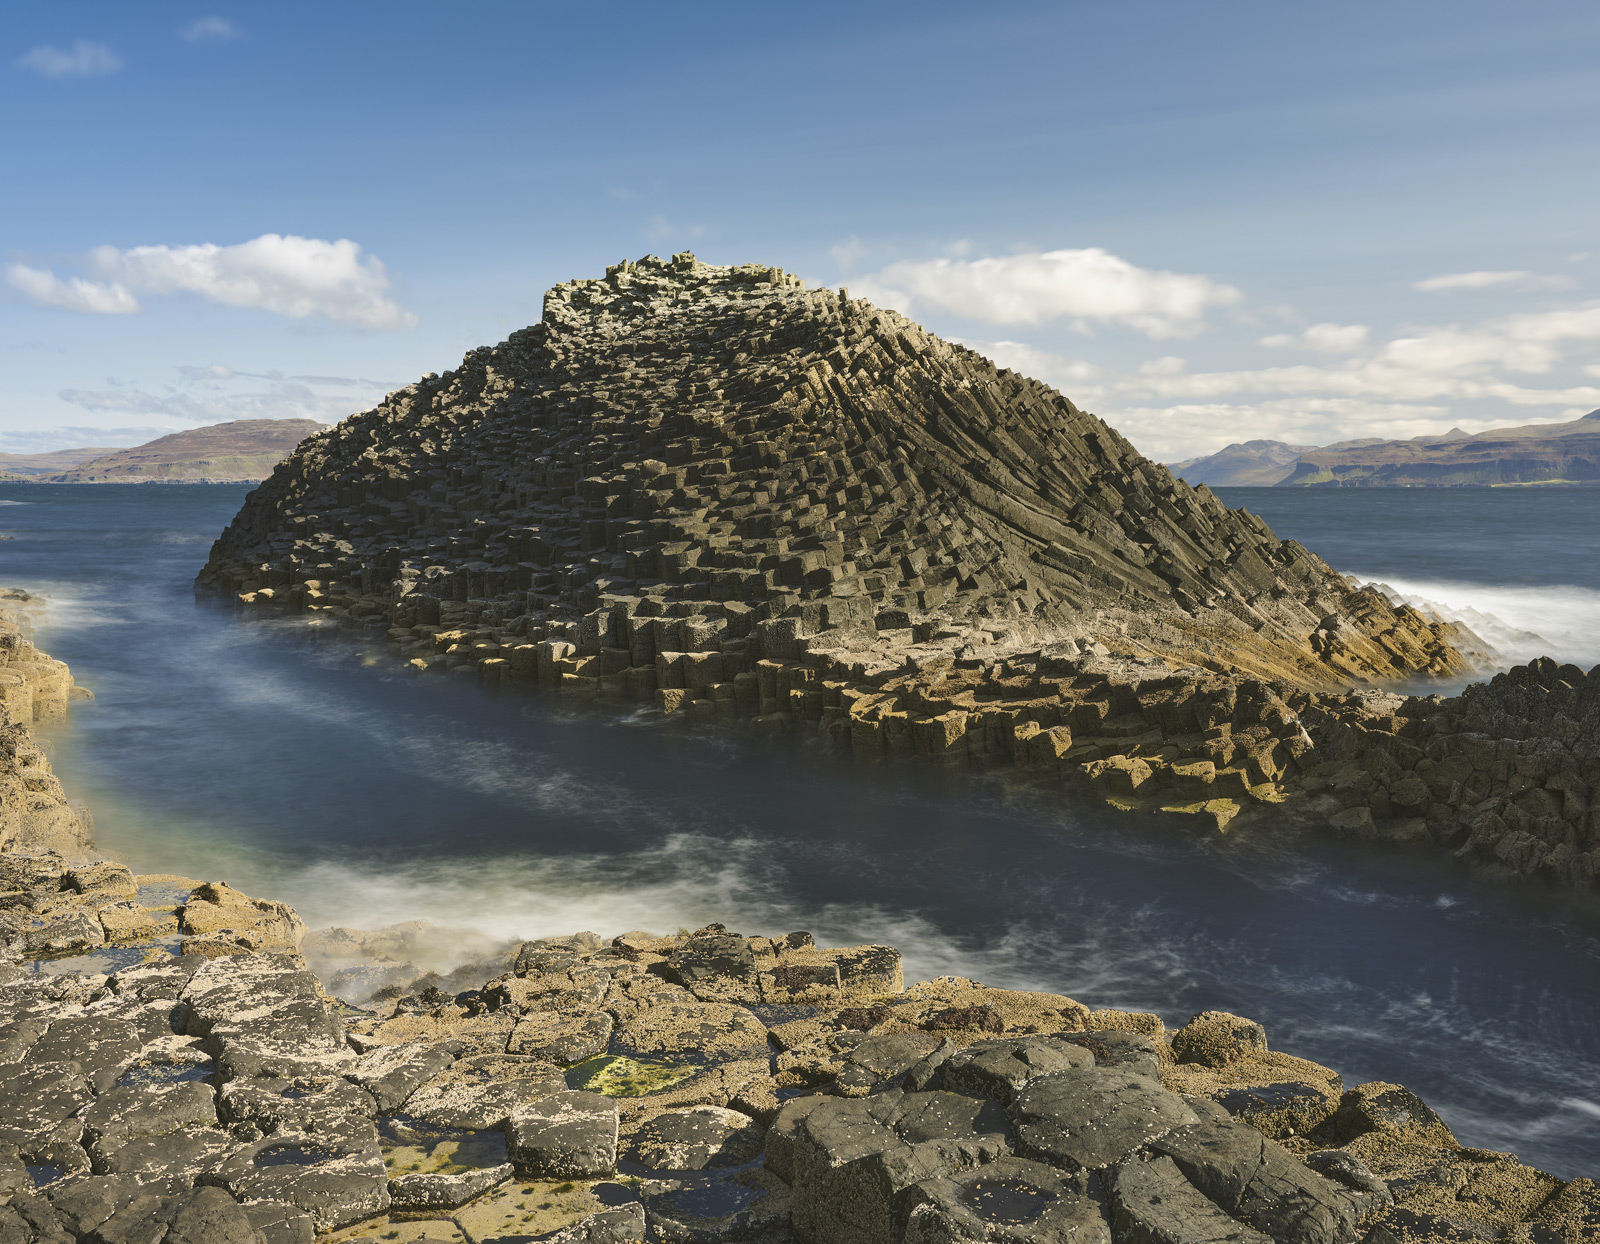 Close to the landing stage on the Isle of Staffa I got my first glimpse of the amazing basalt columns with their hexagonal cross...